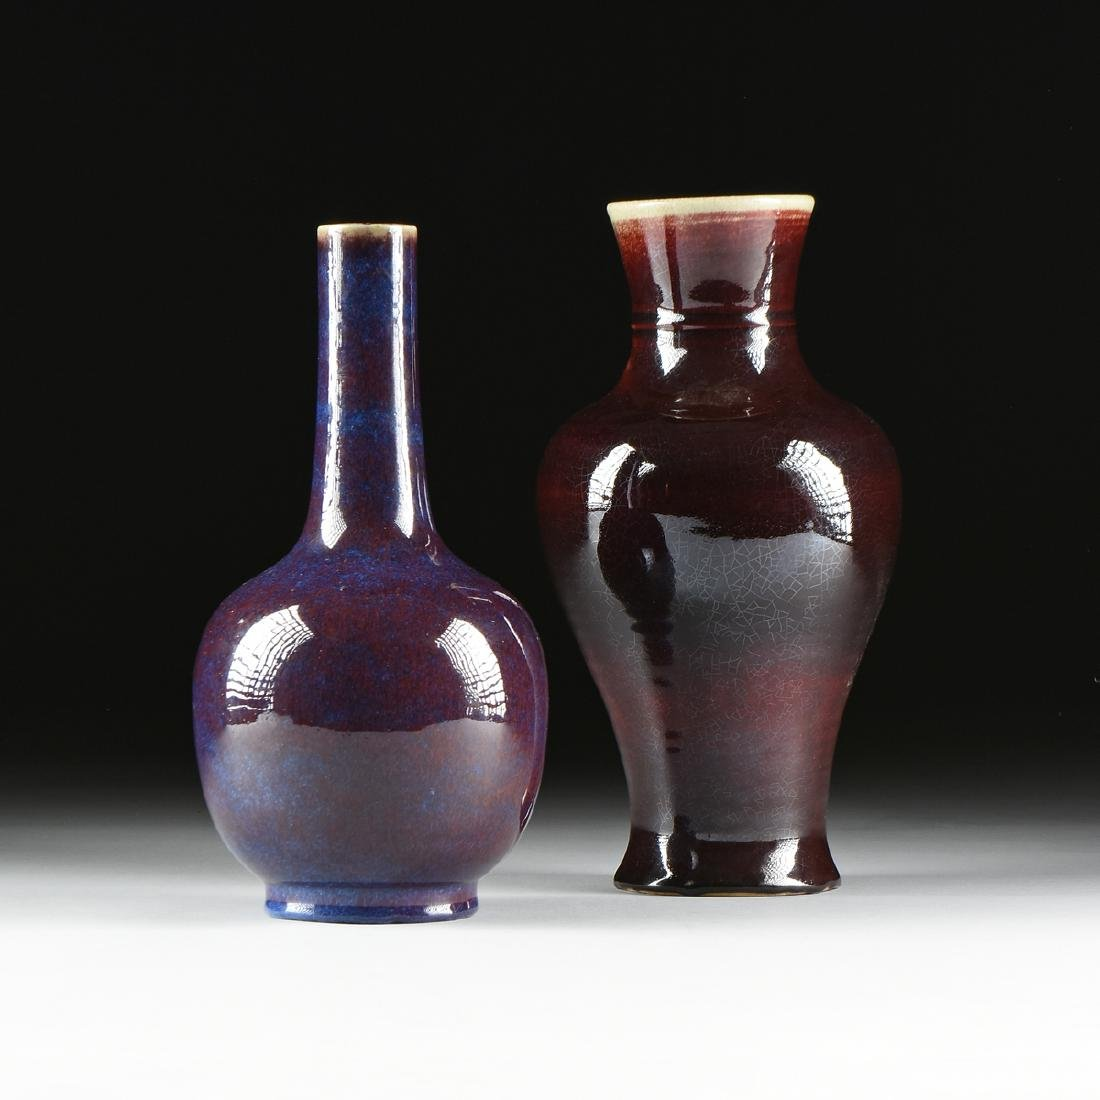 TWO CHINESE SLIP GLAZED PORCELAIN VASES, POSSIBLY LATE